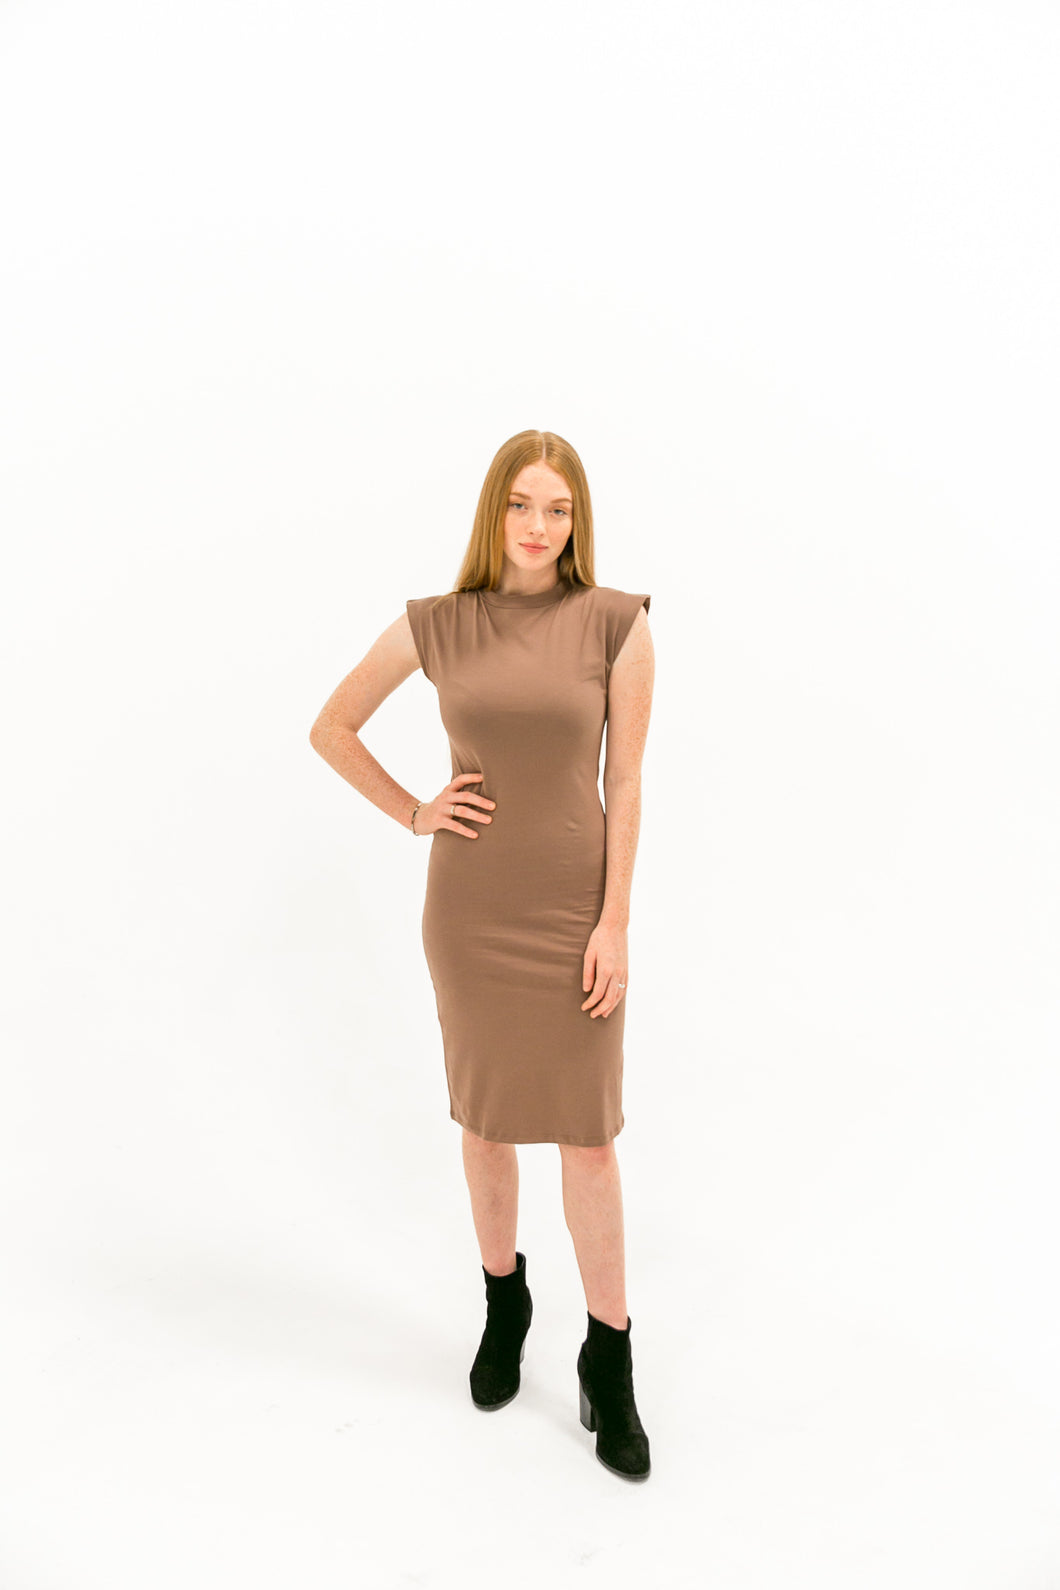 The Caitlin Dress